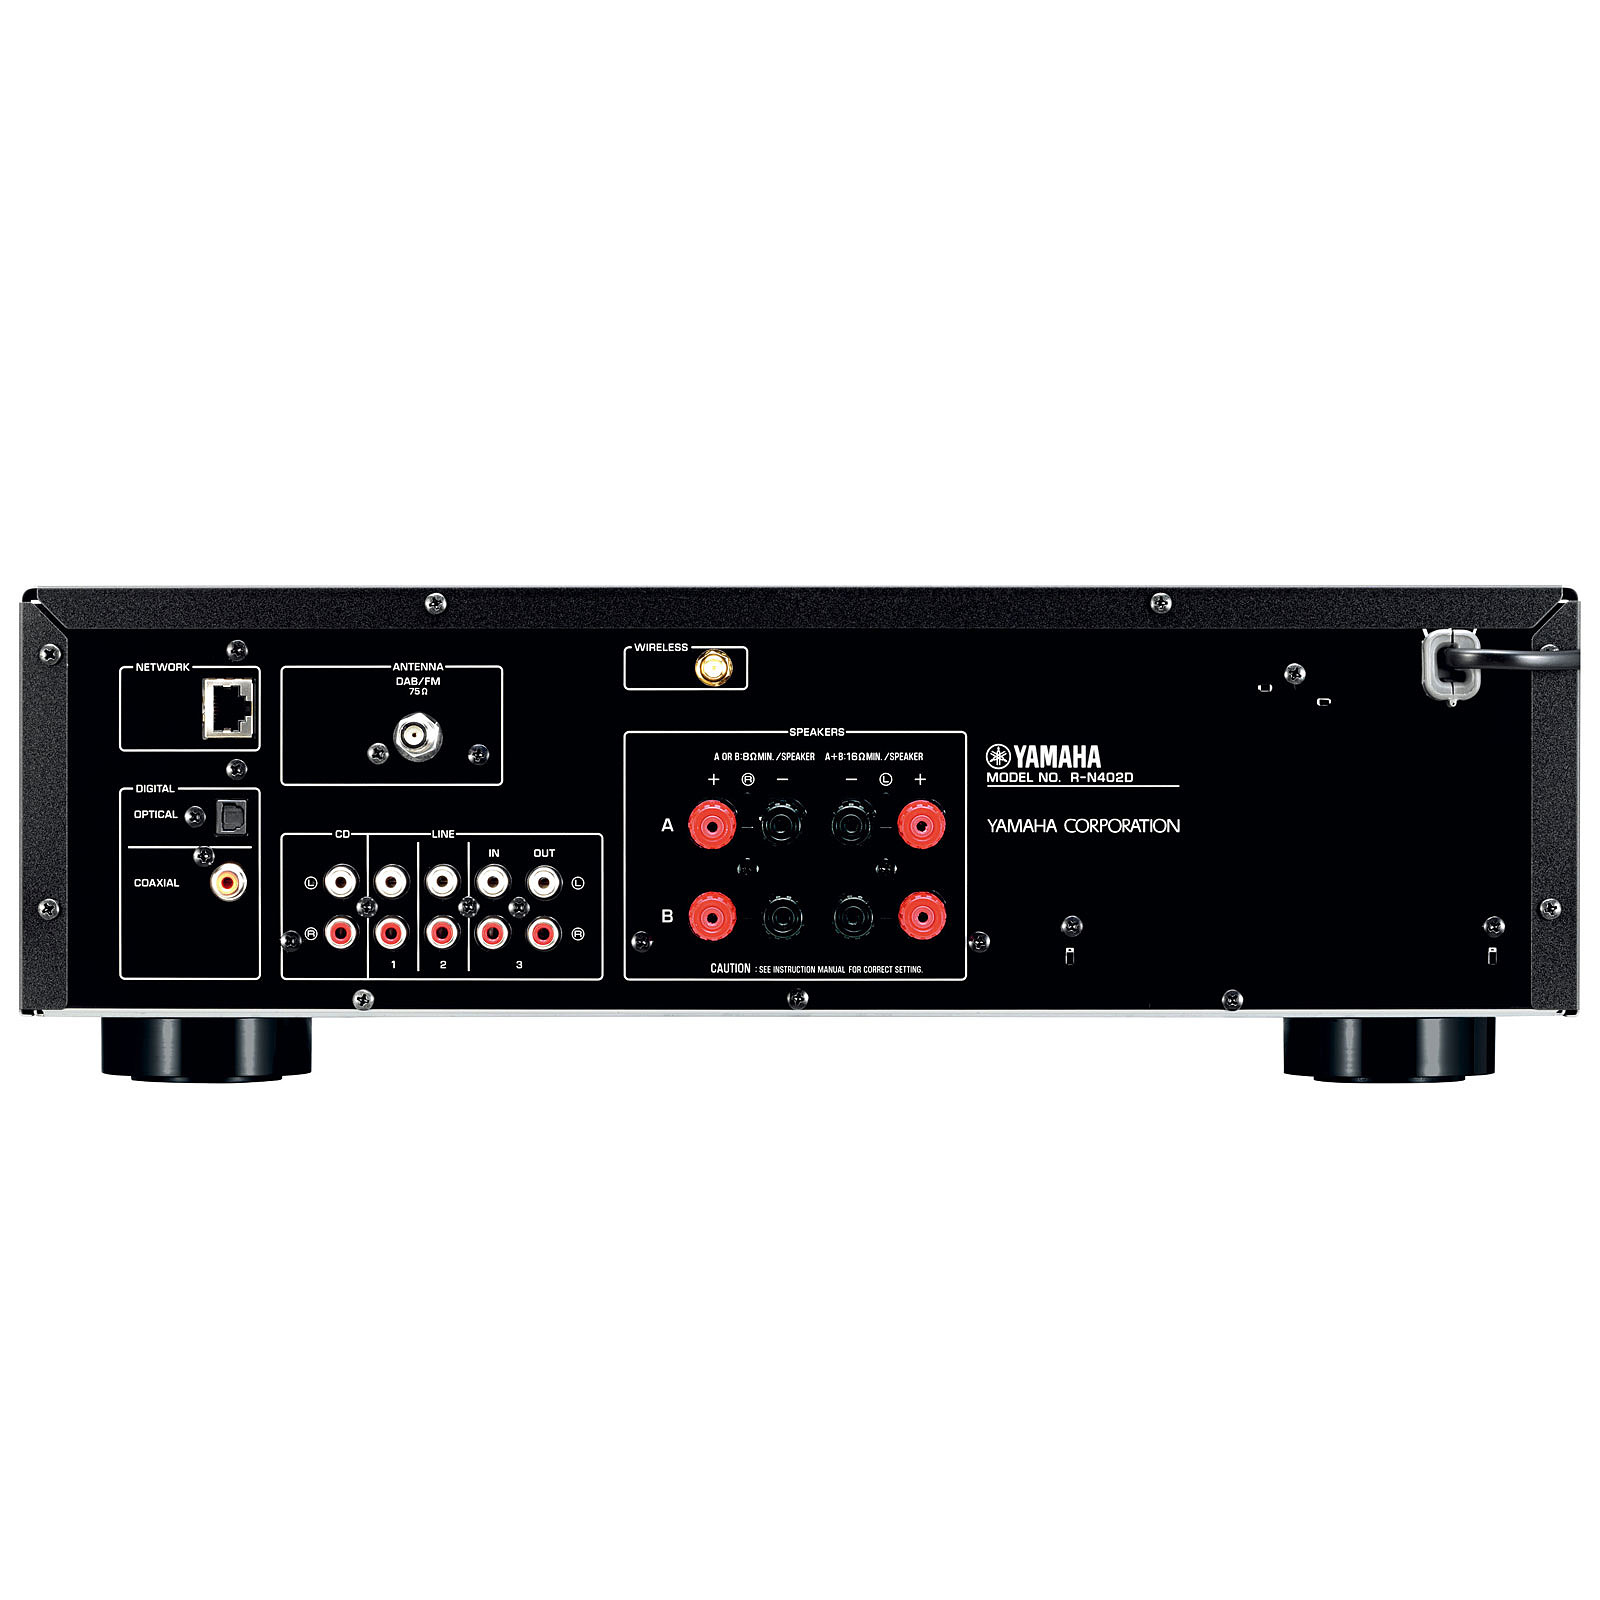 yamaha musiccast r n402d noir amplificateur hifi yamaha. Black Bedroom Furniture Sets. Home Design Ideas